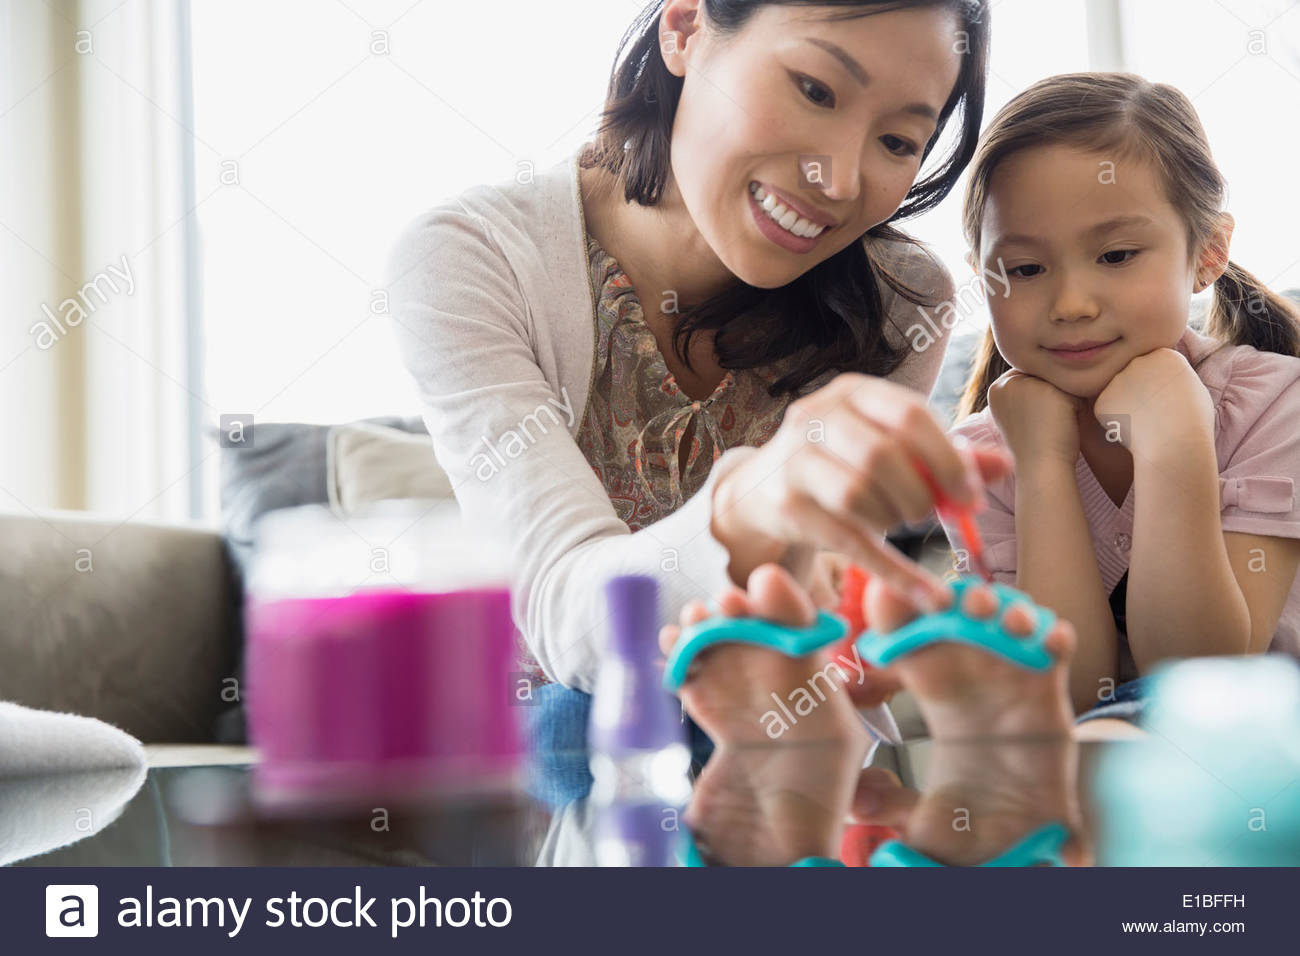 Mother and daughter doing pedicures at home - Stock Image